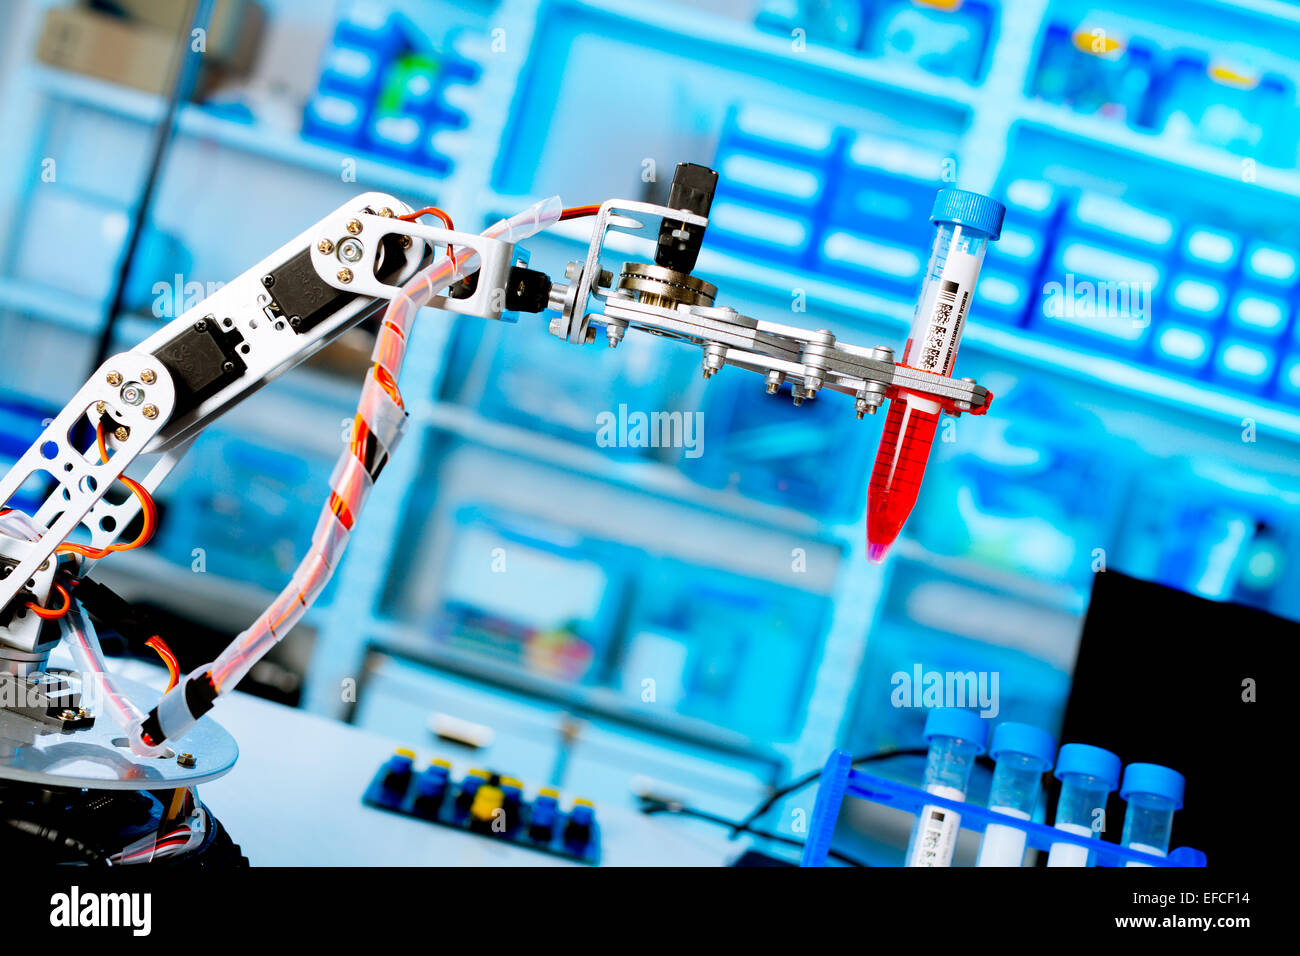 robot manipulates chemical tubes in the laboratory - Stock Image